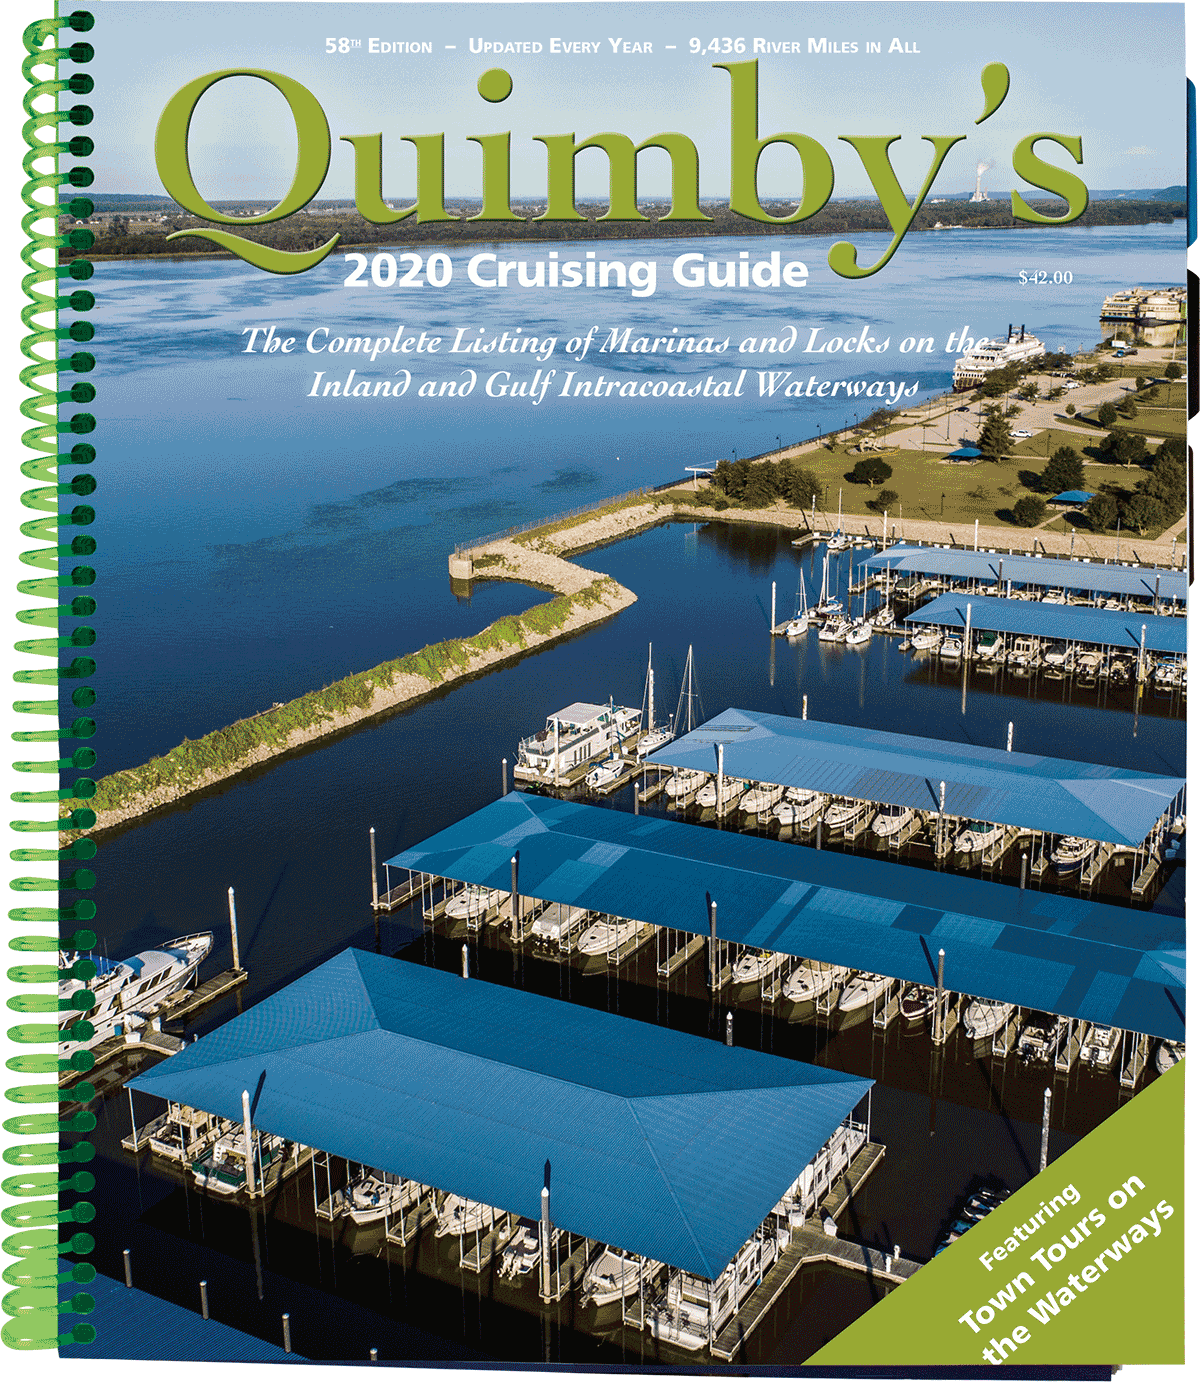 Quimby's 2020 Cruising Guide